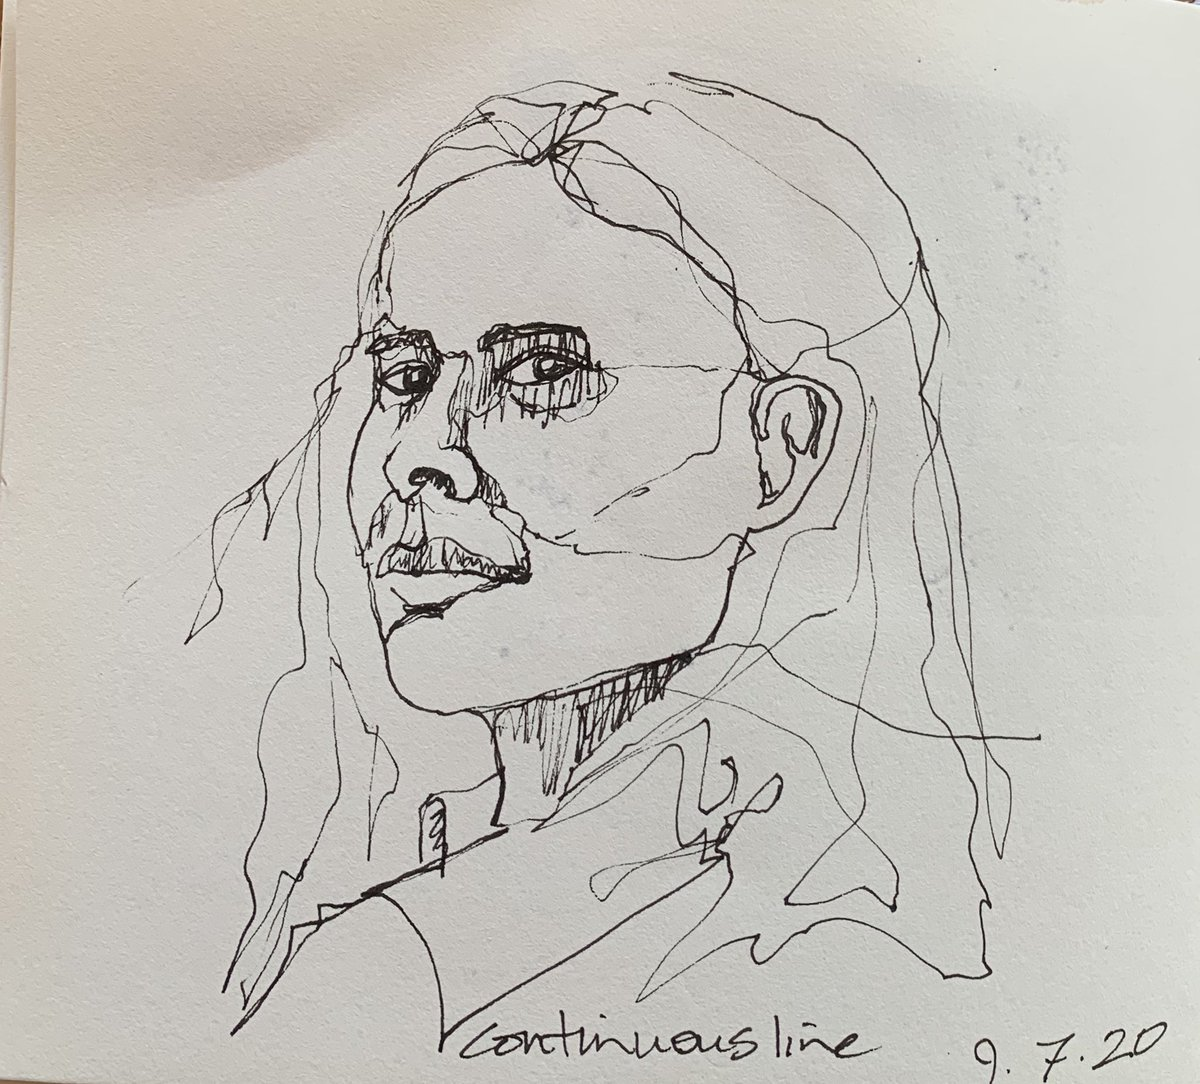 Continuous line drawing. #dailydrawing #onelinedrawing #portrait #linedrawing #continuouslinedrawingpic.twitter.com/wFXsf7sad8